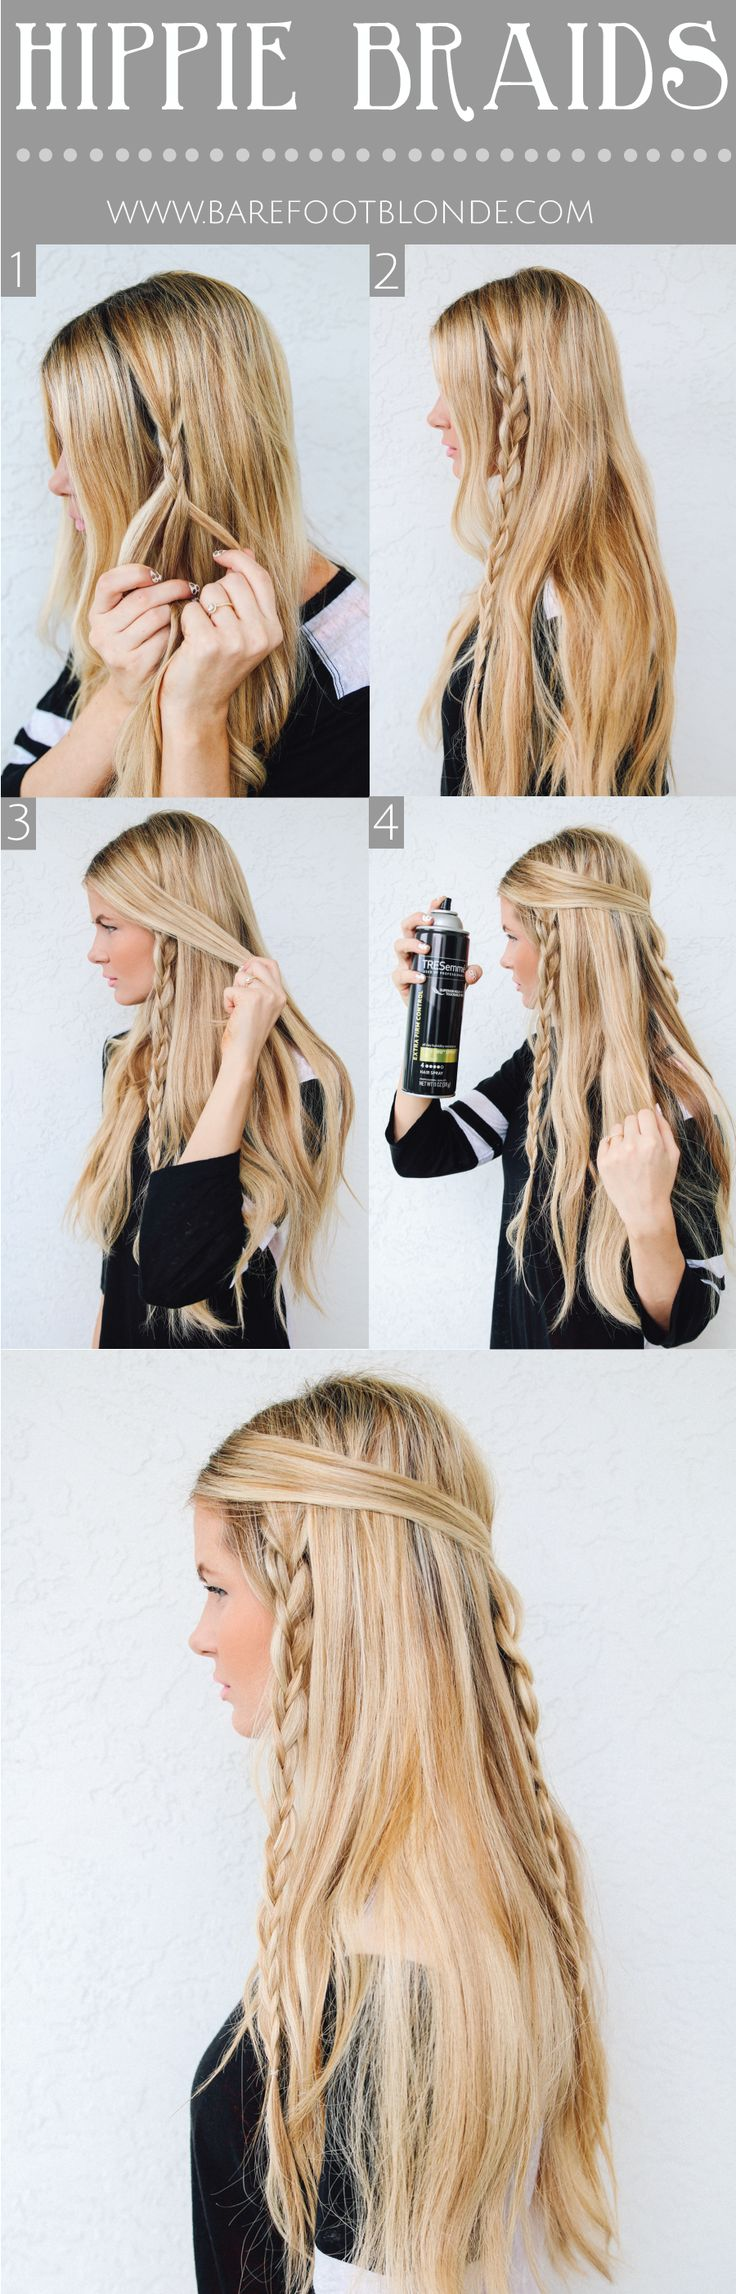 Hippie Braids for Long Blonde Hairstyles